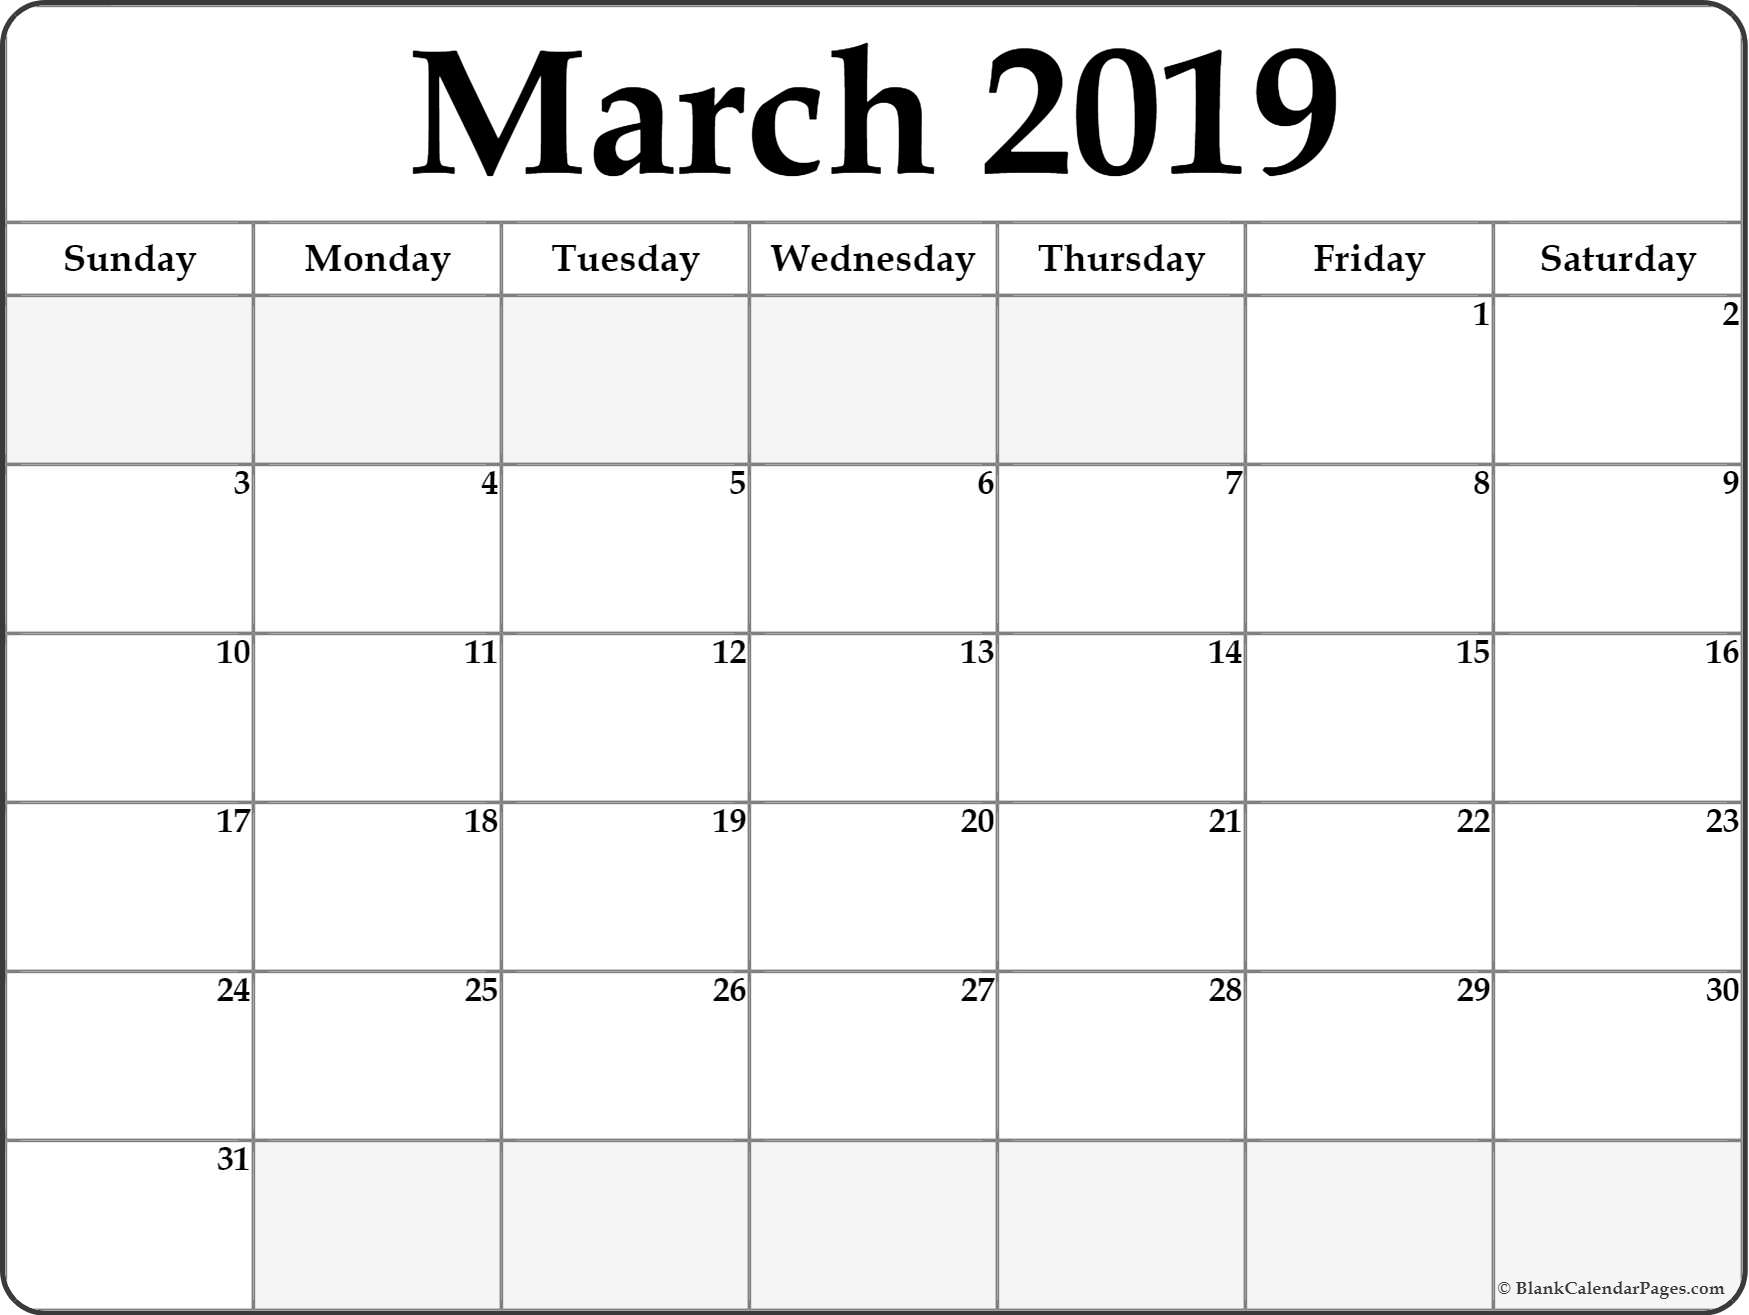 March 2019 Calendar | Free Printable Monthly Calendars within Blank Printable Calendar March